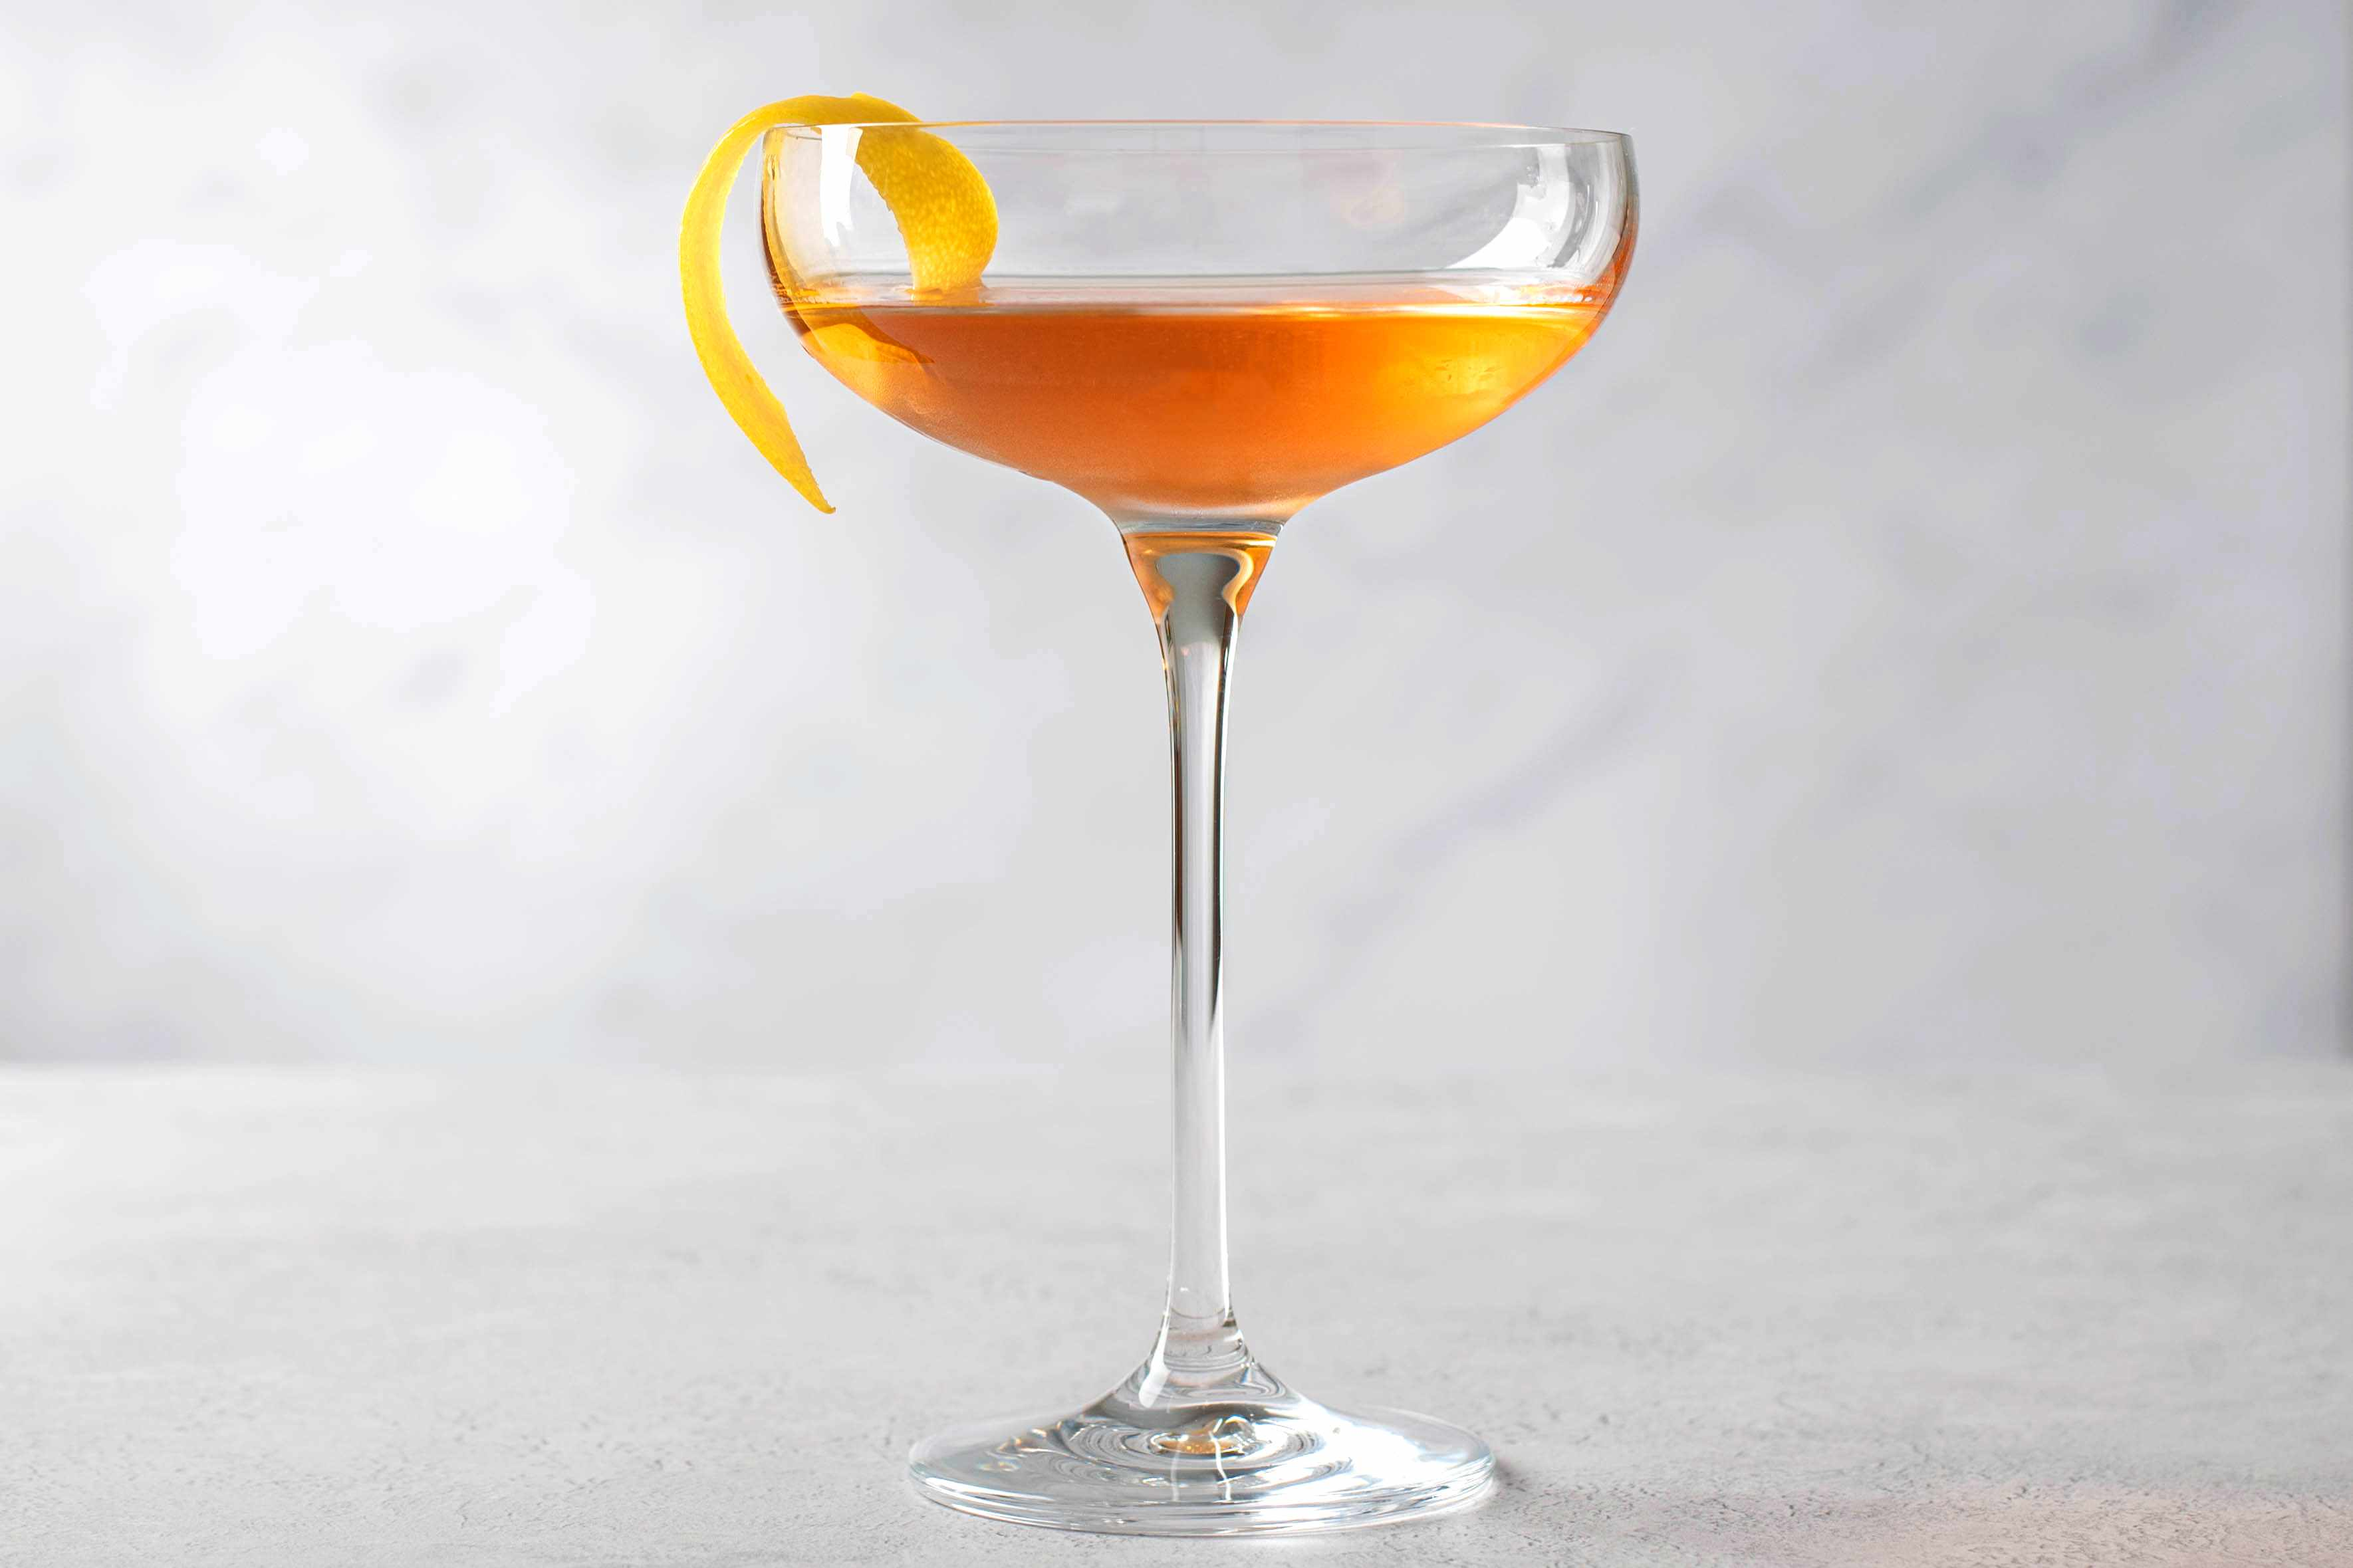 Pink Gin: A Classic Cocktail for Gin Lovers